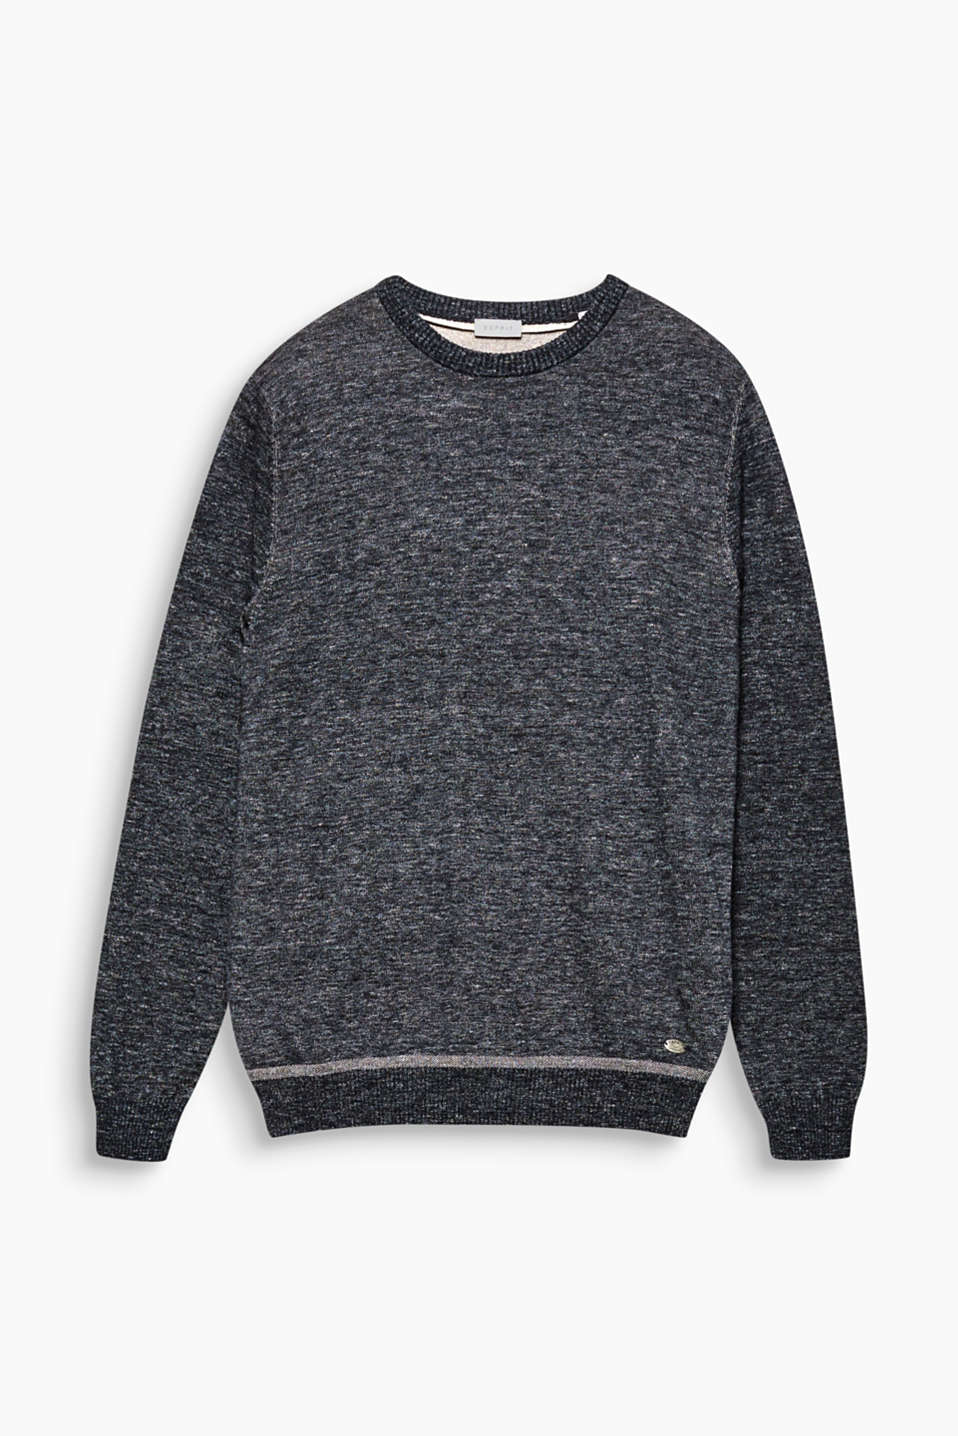 Your fashion essential for autumn: fine knit jumper in 100% cotton